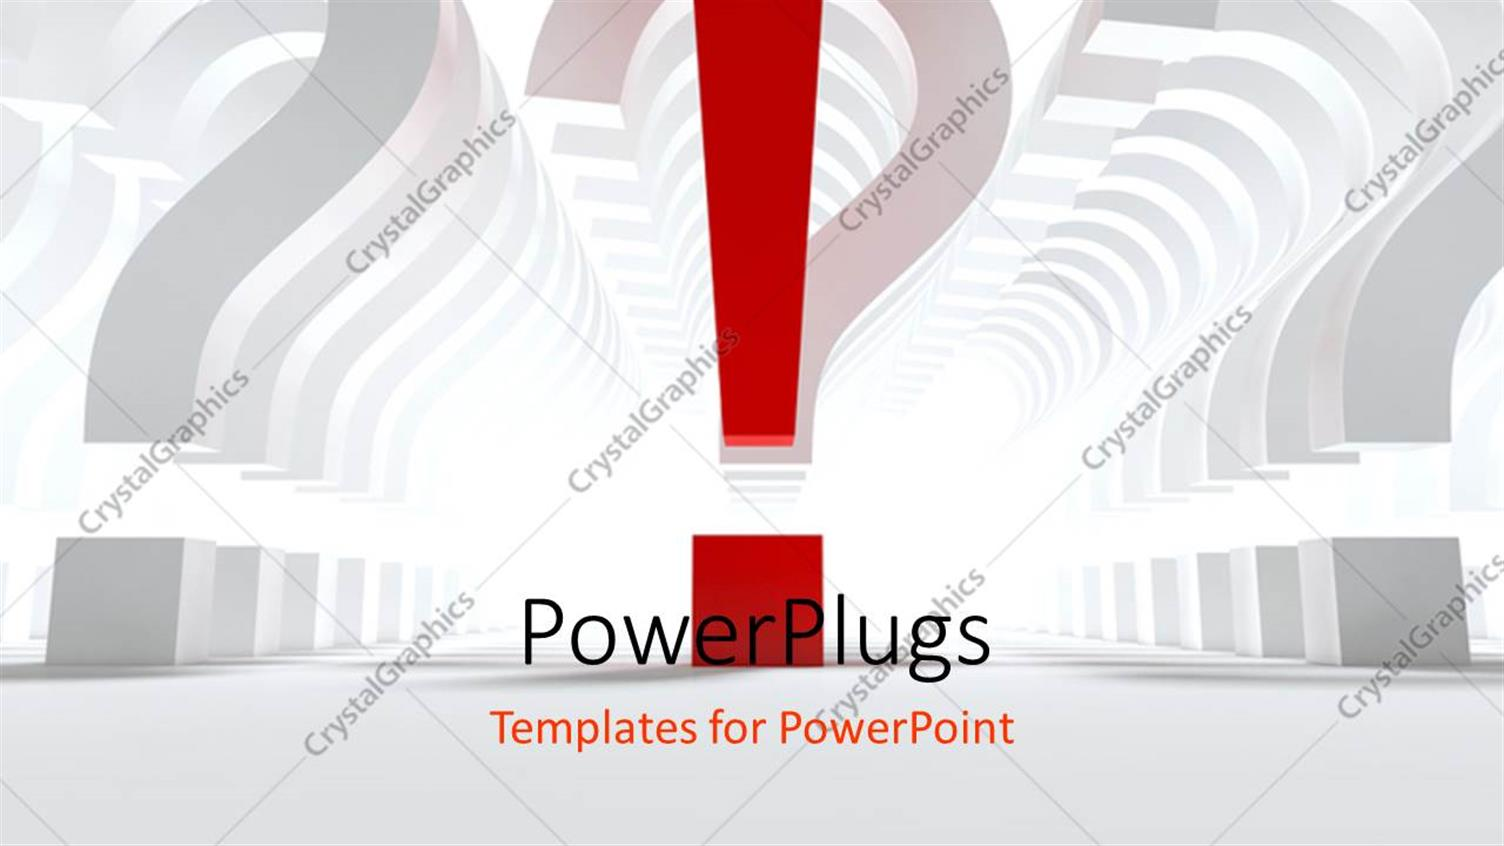 PowerPoint Template Displaying Number of Question Sign with Single Red Exclamation Sign Against White Color